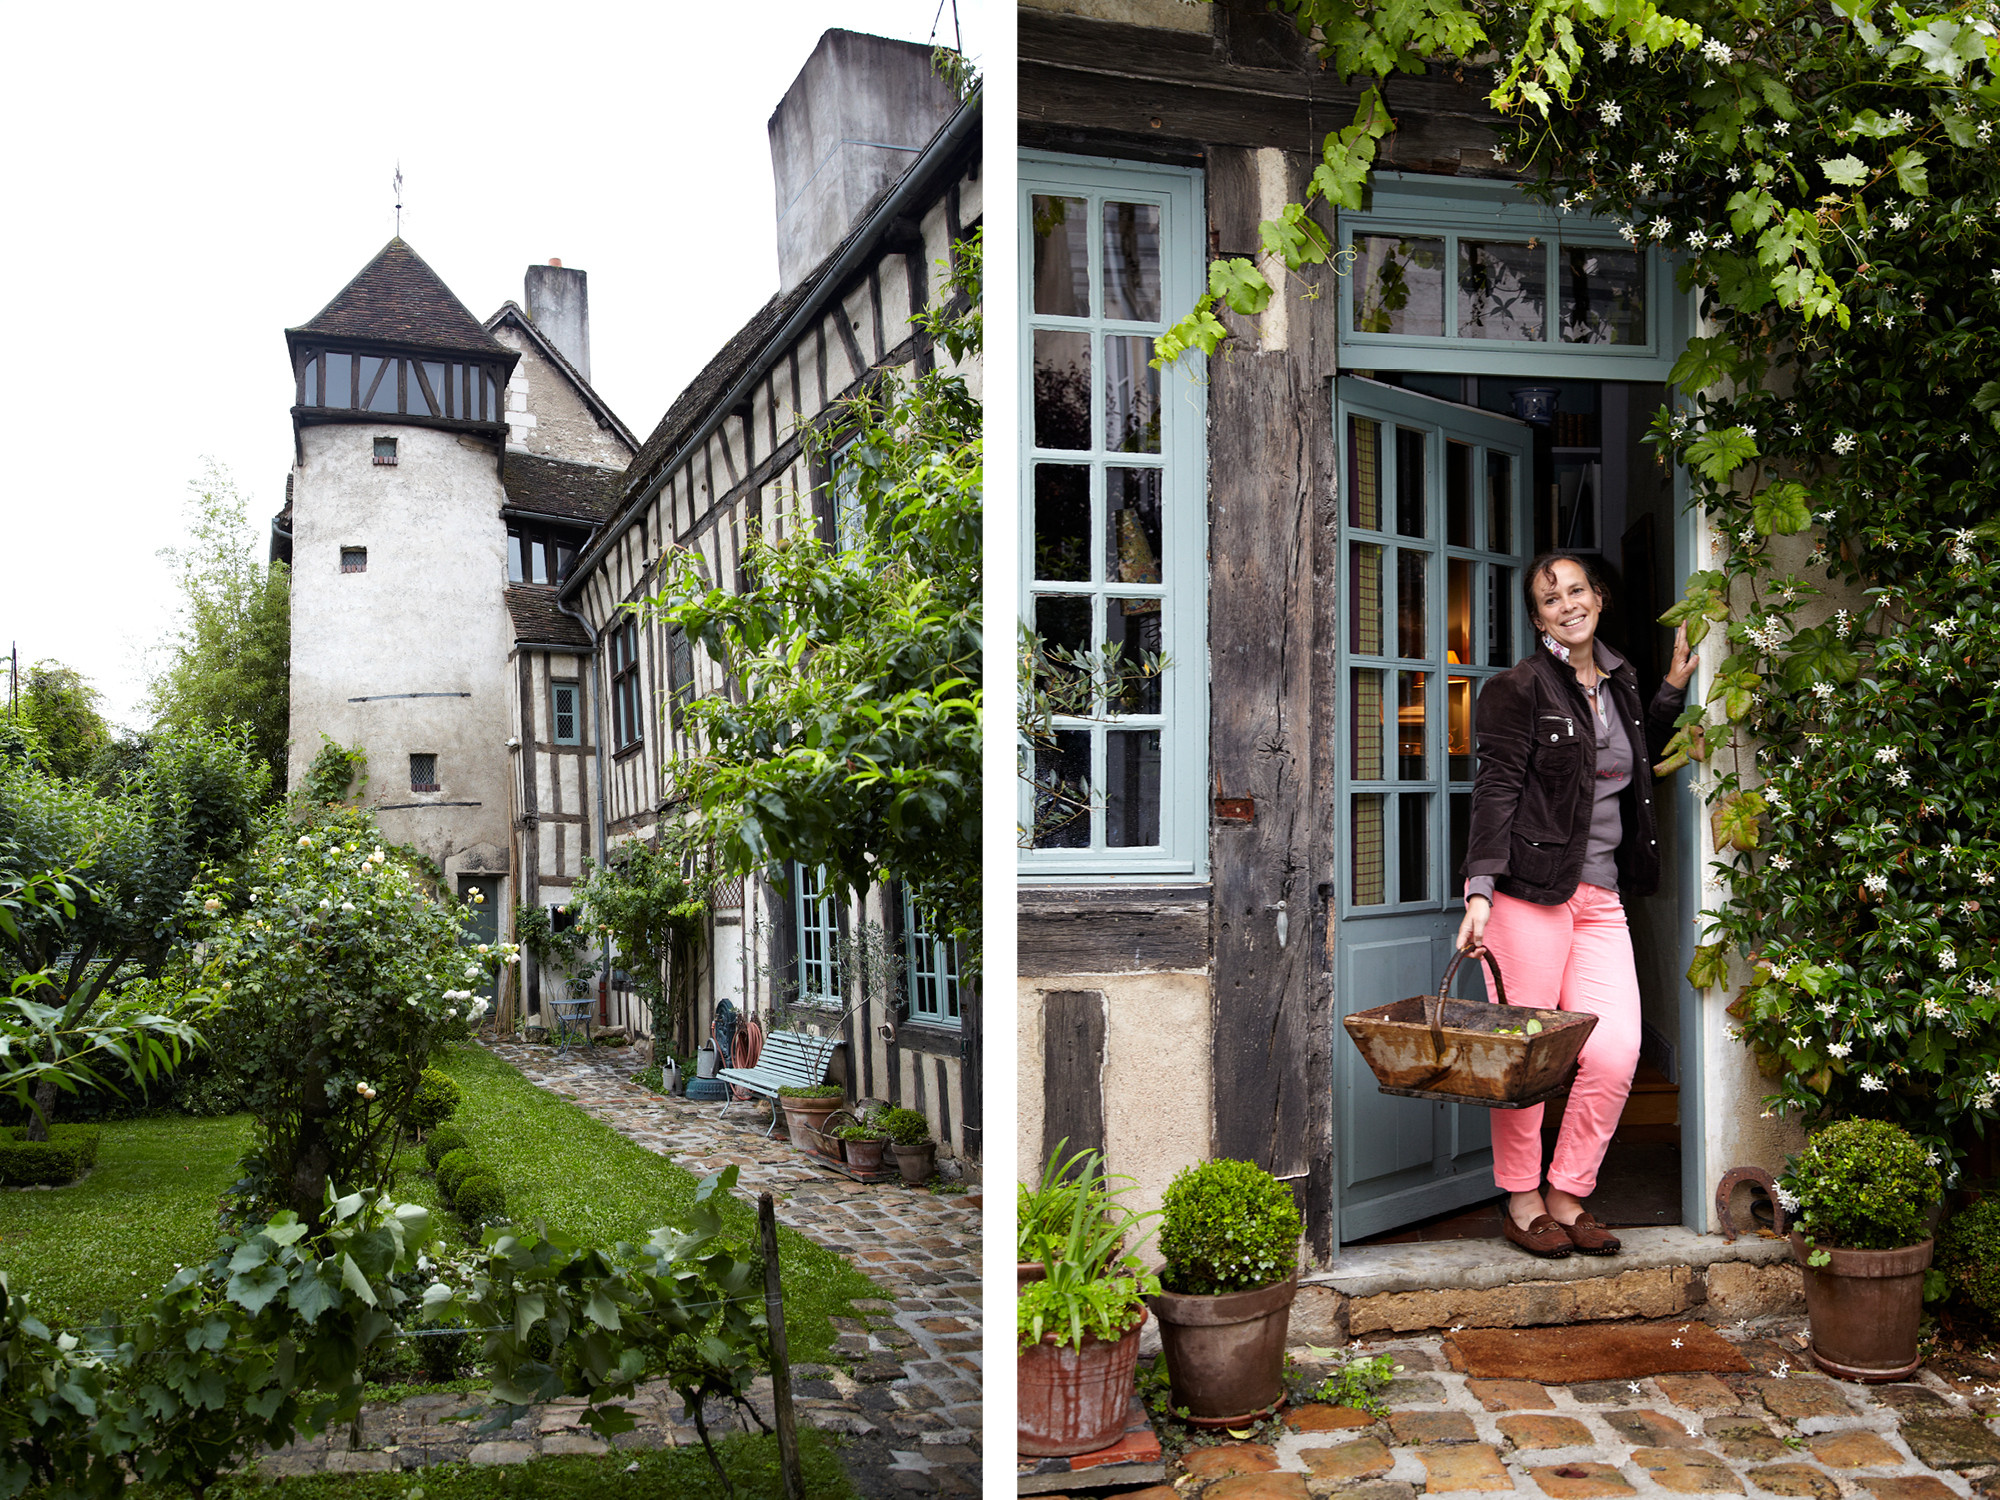 Watercolor artist Céline Chollet and her husband, Olivier, live in a 16th-century Maison à Colombage (timber-framed house) in the Burgundian town of Auxerre, France. The artist at home in her garden.